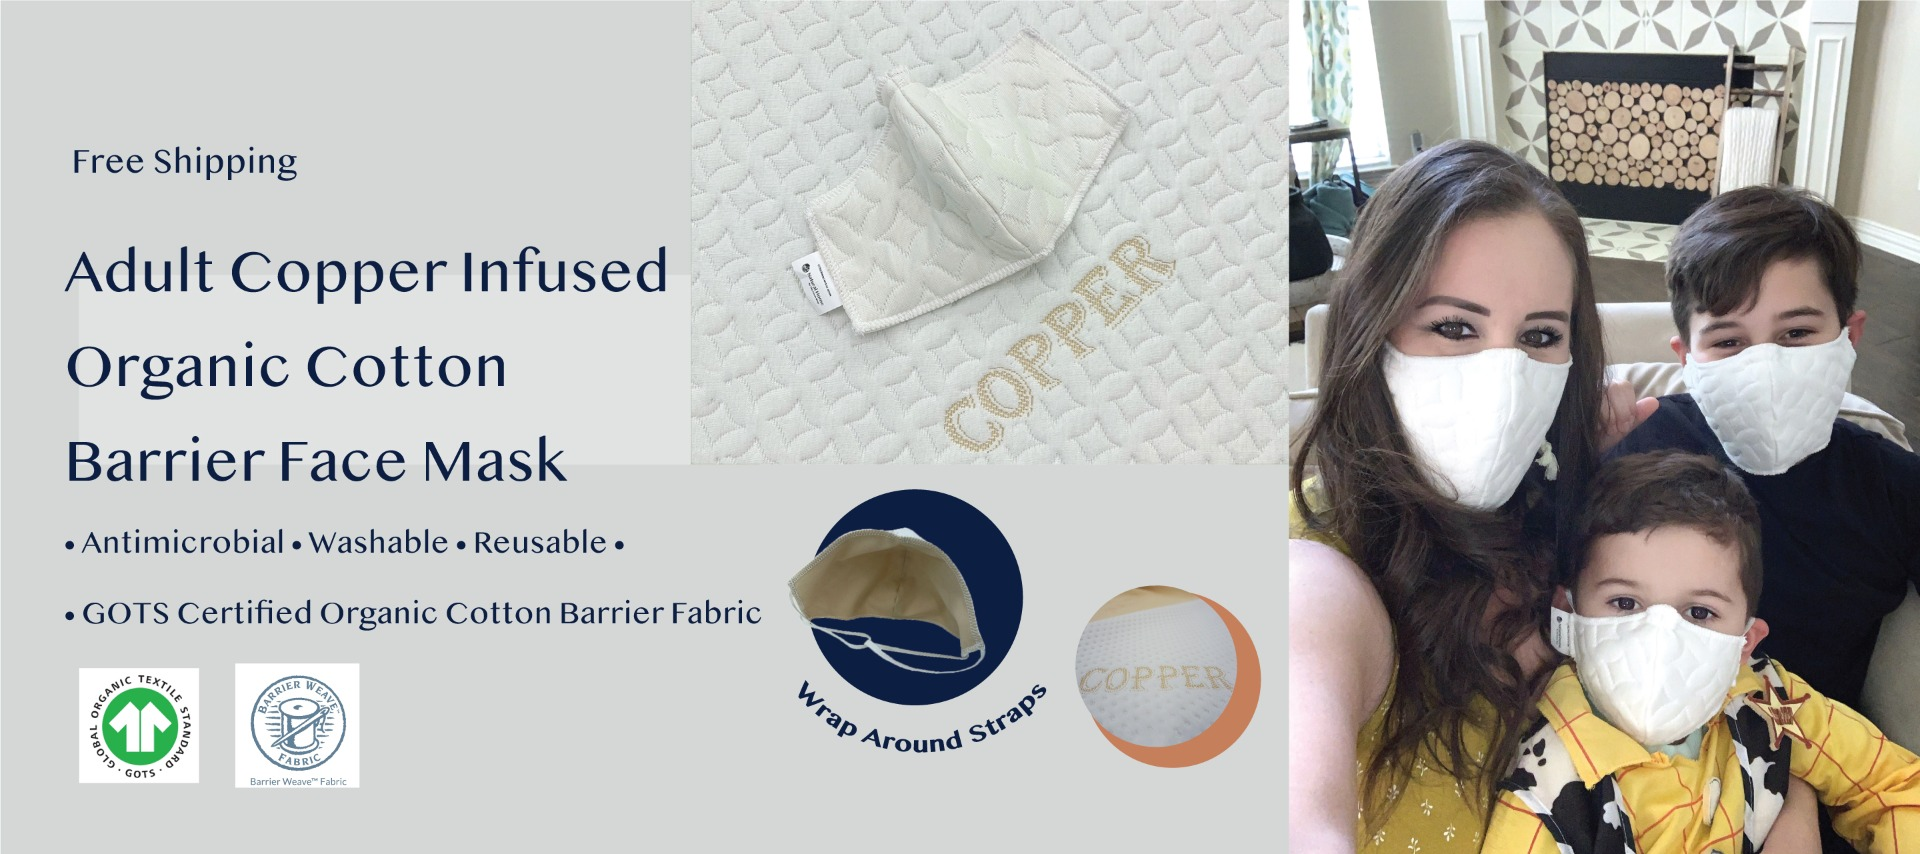 COPPER INFUSED ORGANIC COTTON BARRIER